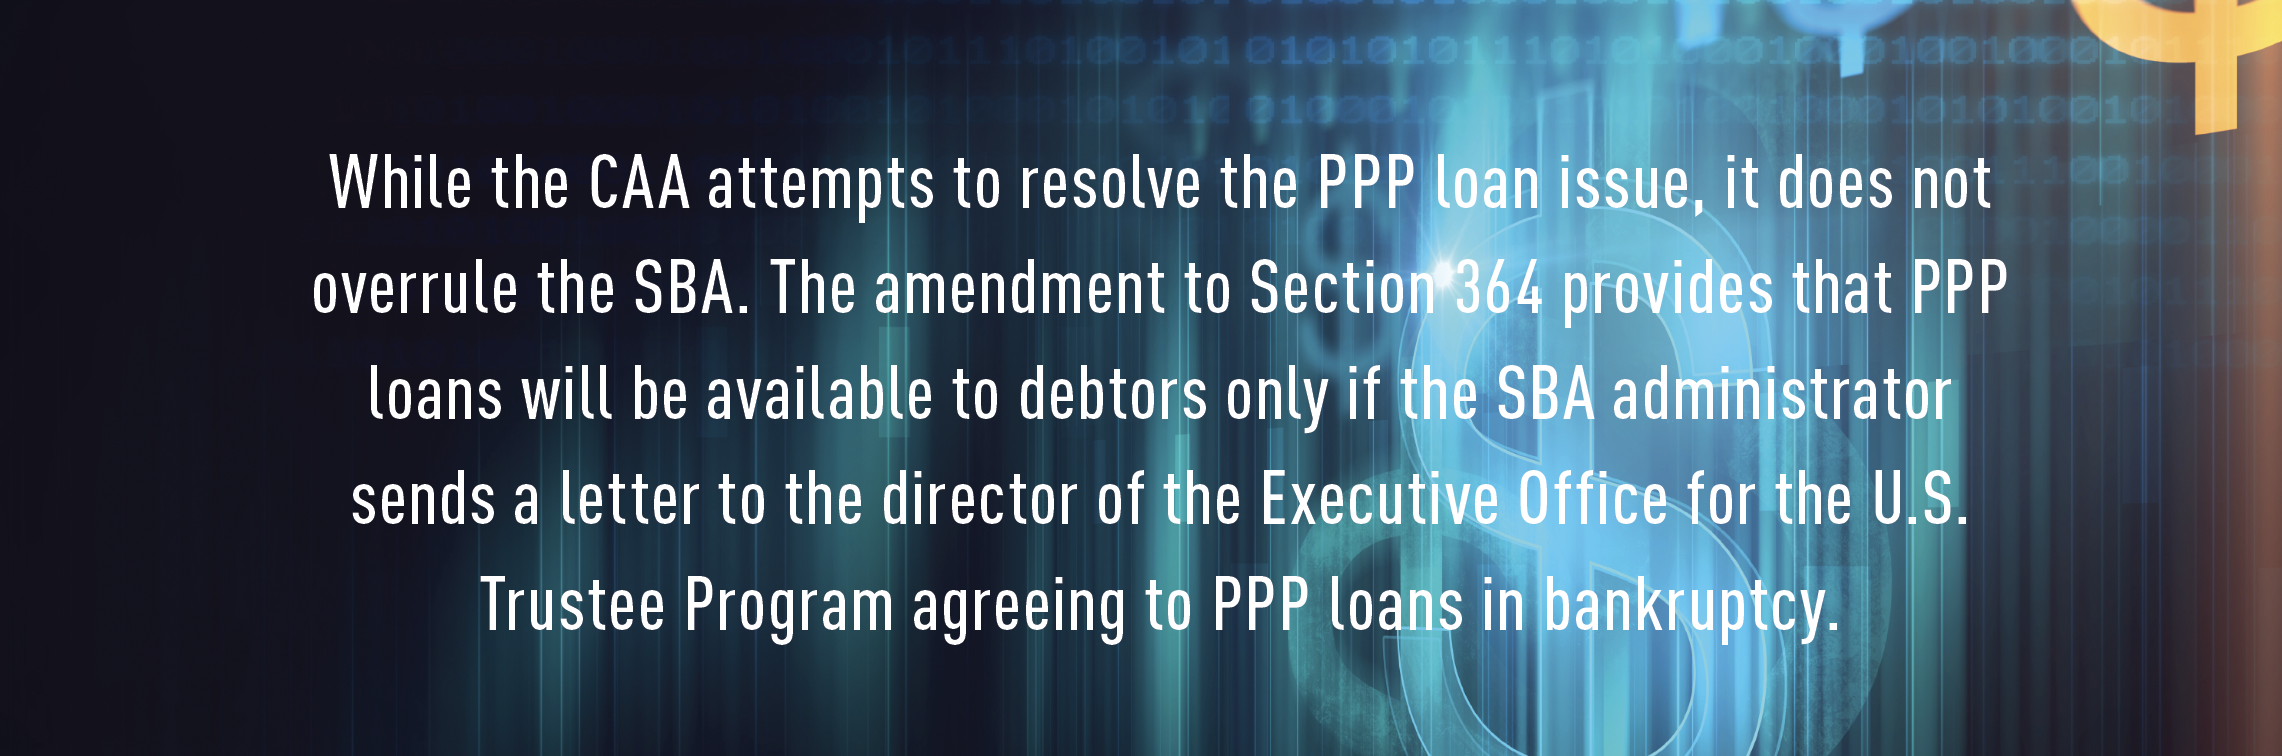 While the CAA attempts to resolve the PPP loan issue, it does not overrule the SBA. The amendment to Section 364 provides that PPP loans will be available to debtors only if the SBA administrator sends a letter to the director of the Executive Office for